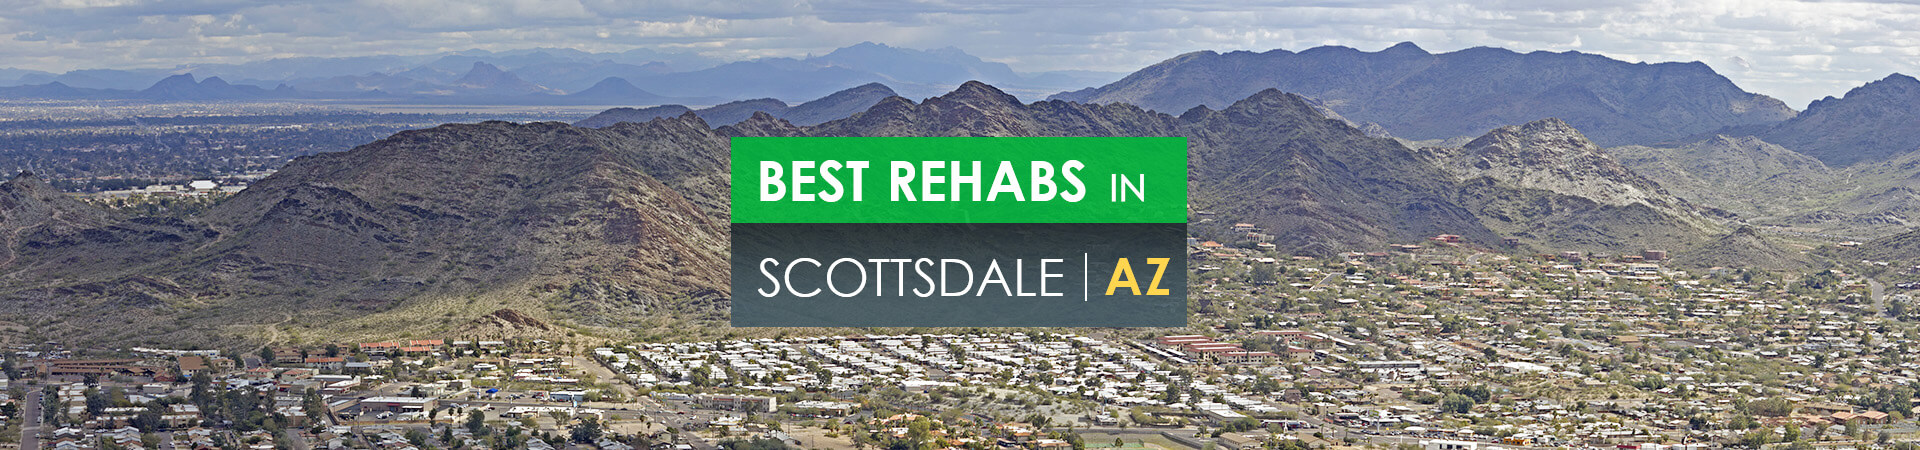 Best rehabs in Scottsdale, AZ